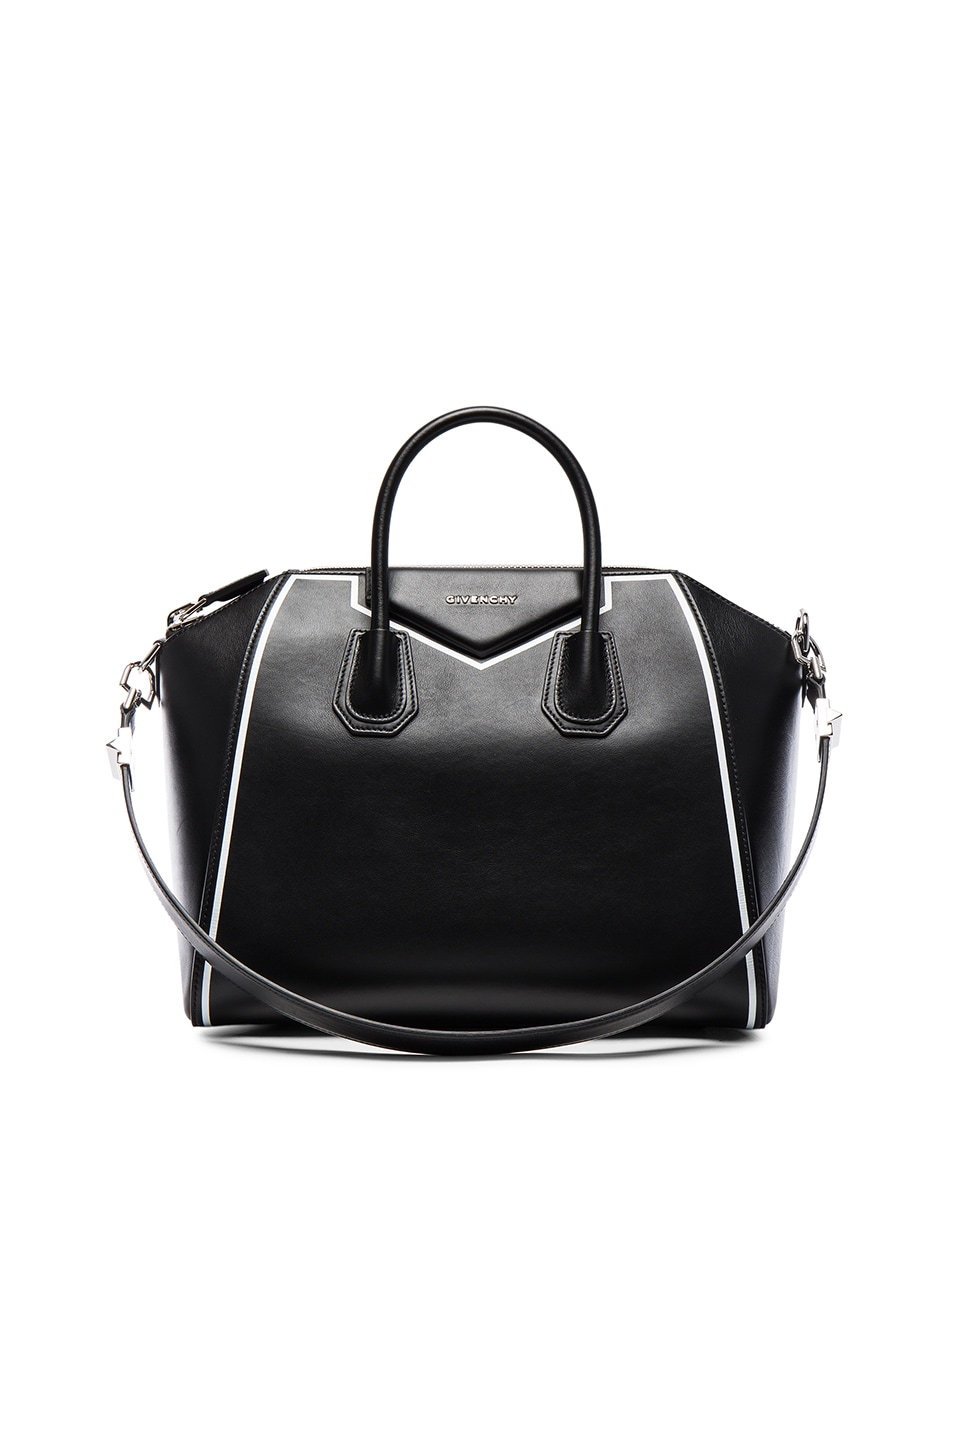 Givenchy Small Contrasted Frame Antigona in Black | FWRD